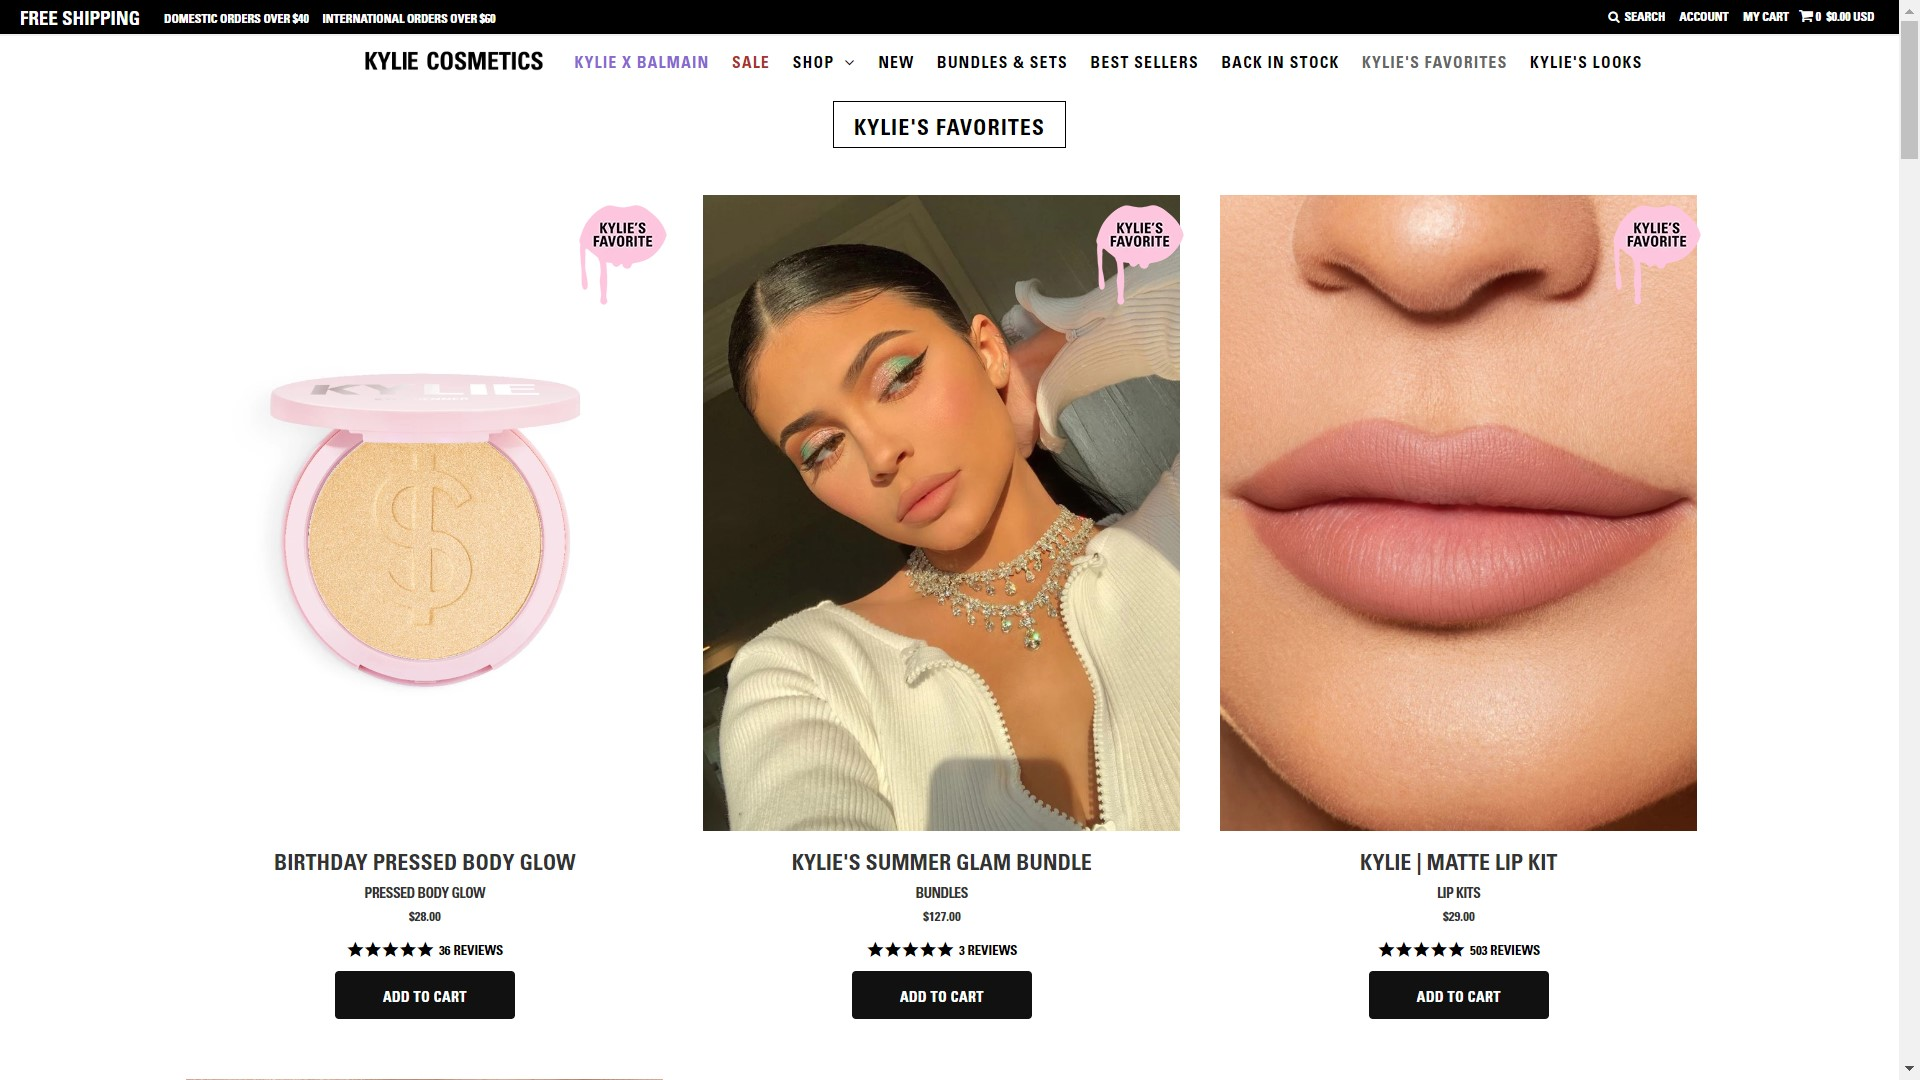 Kylie's Favorites section of the Kylie Cosmetics Shopify store